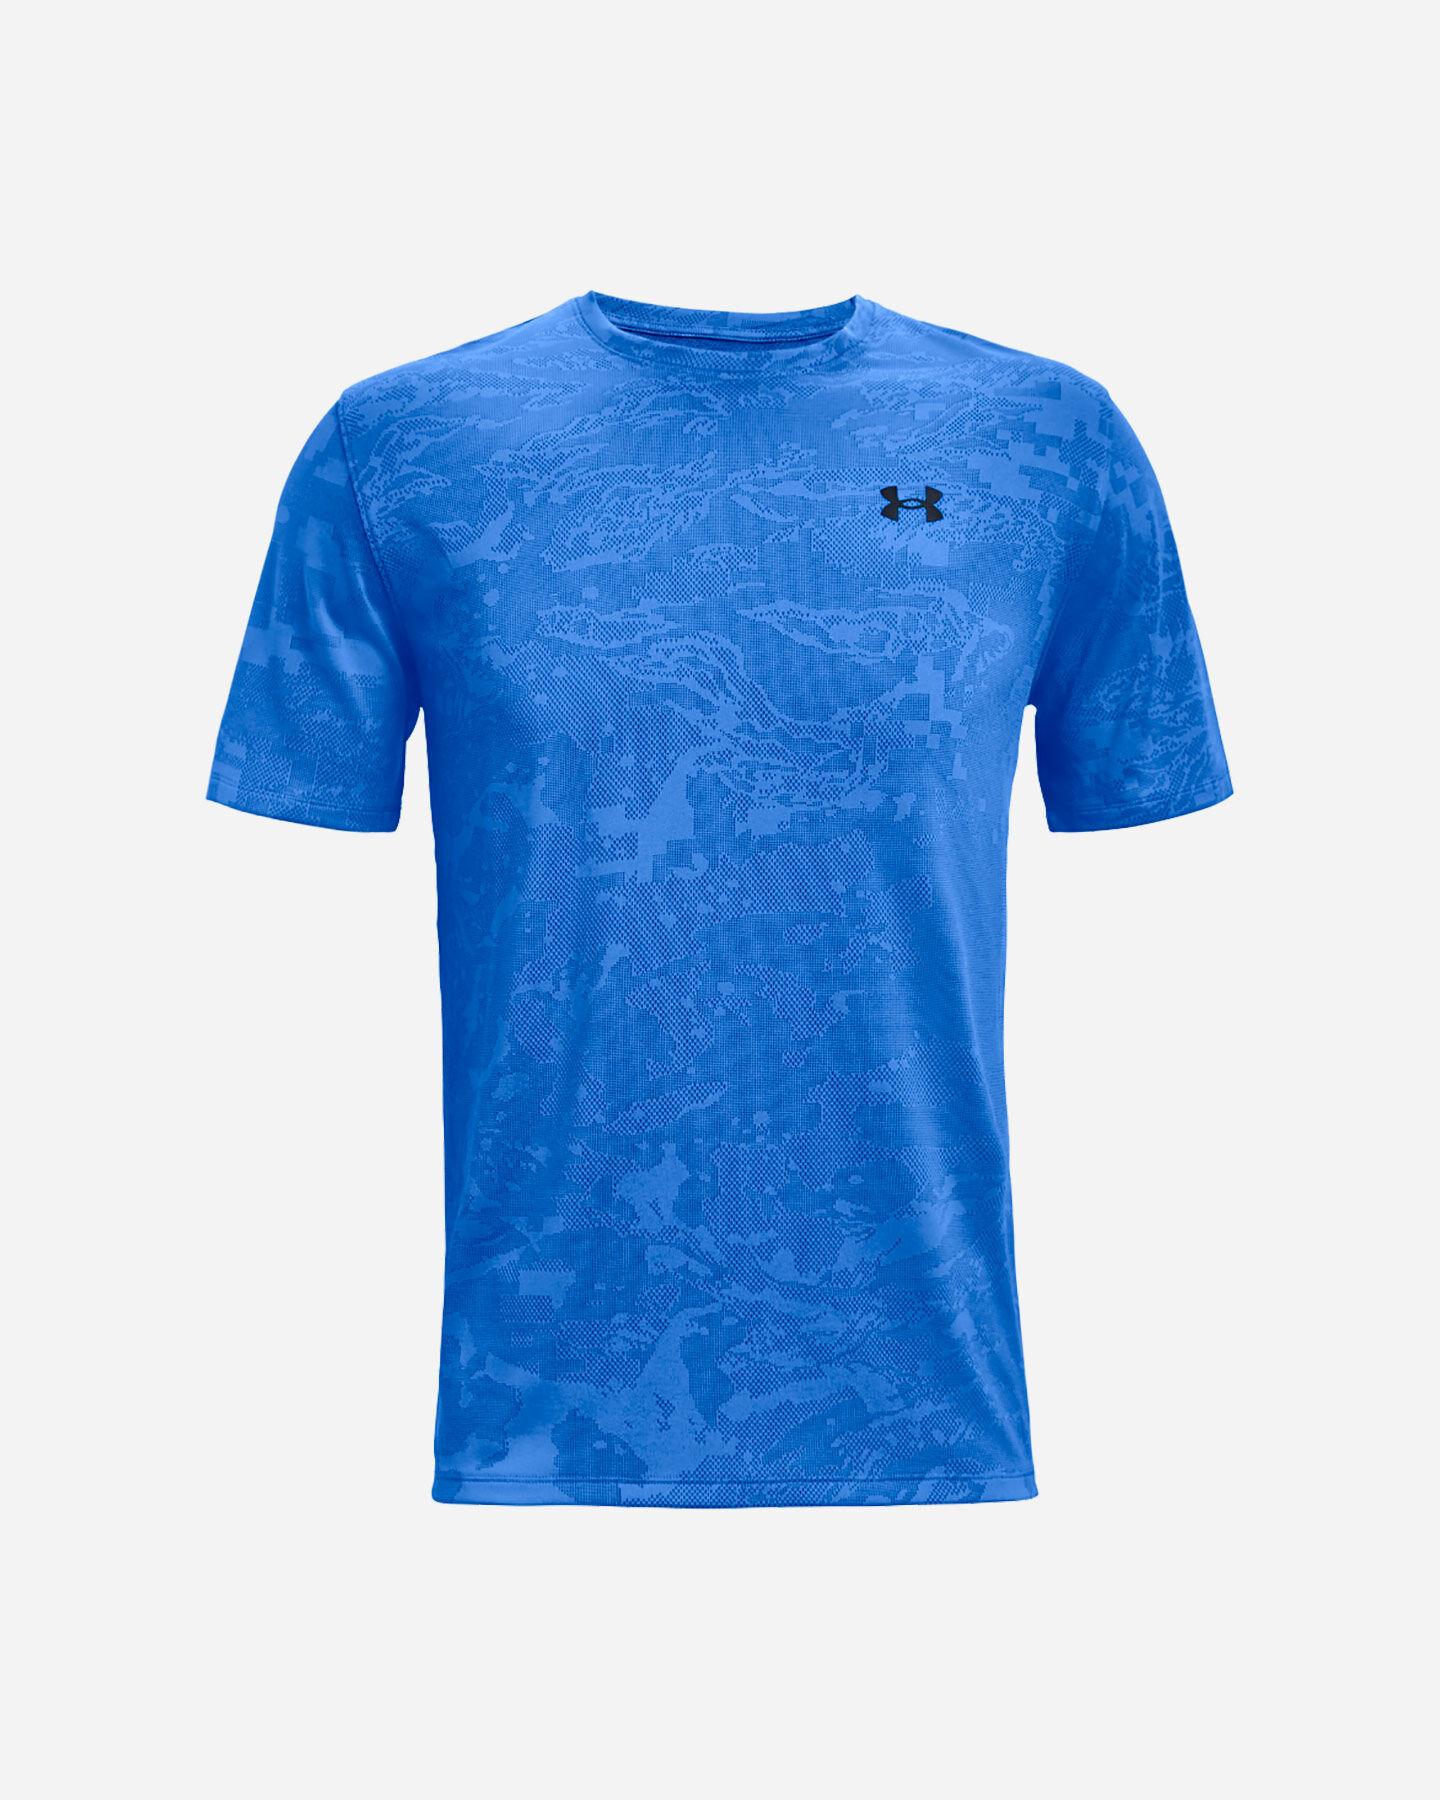 T-Shirt training UNDER ARMOUR TRAINING VENT M S5287261 scatto 0